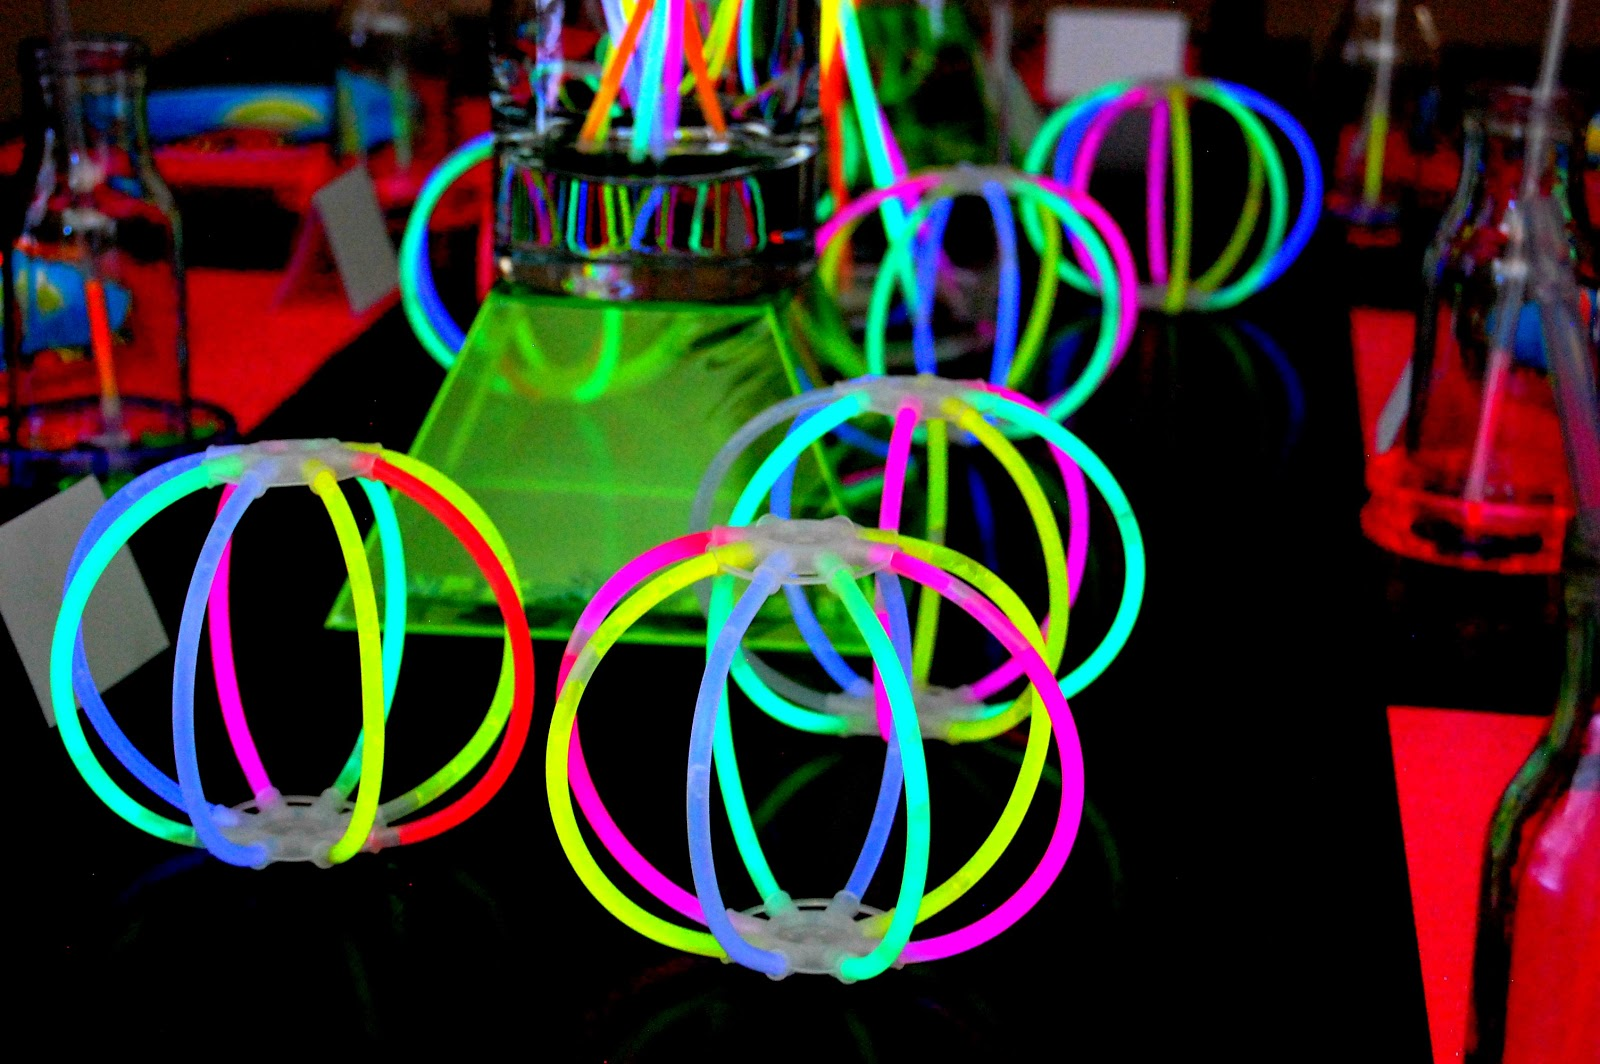 Glow In The Dark Decoration Ideas simply creative insanity: totally cool..neon glow party